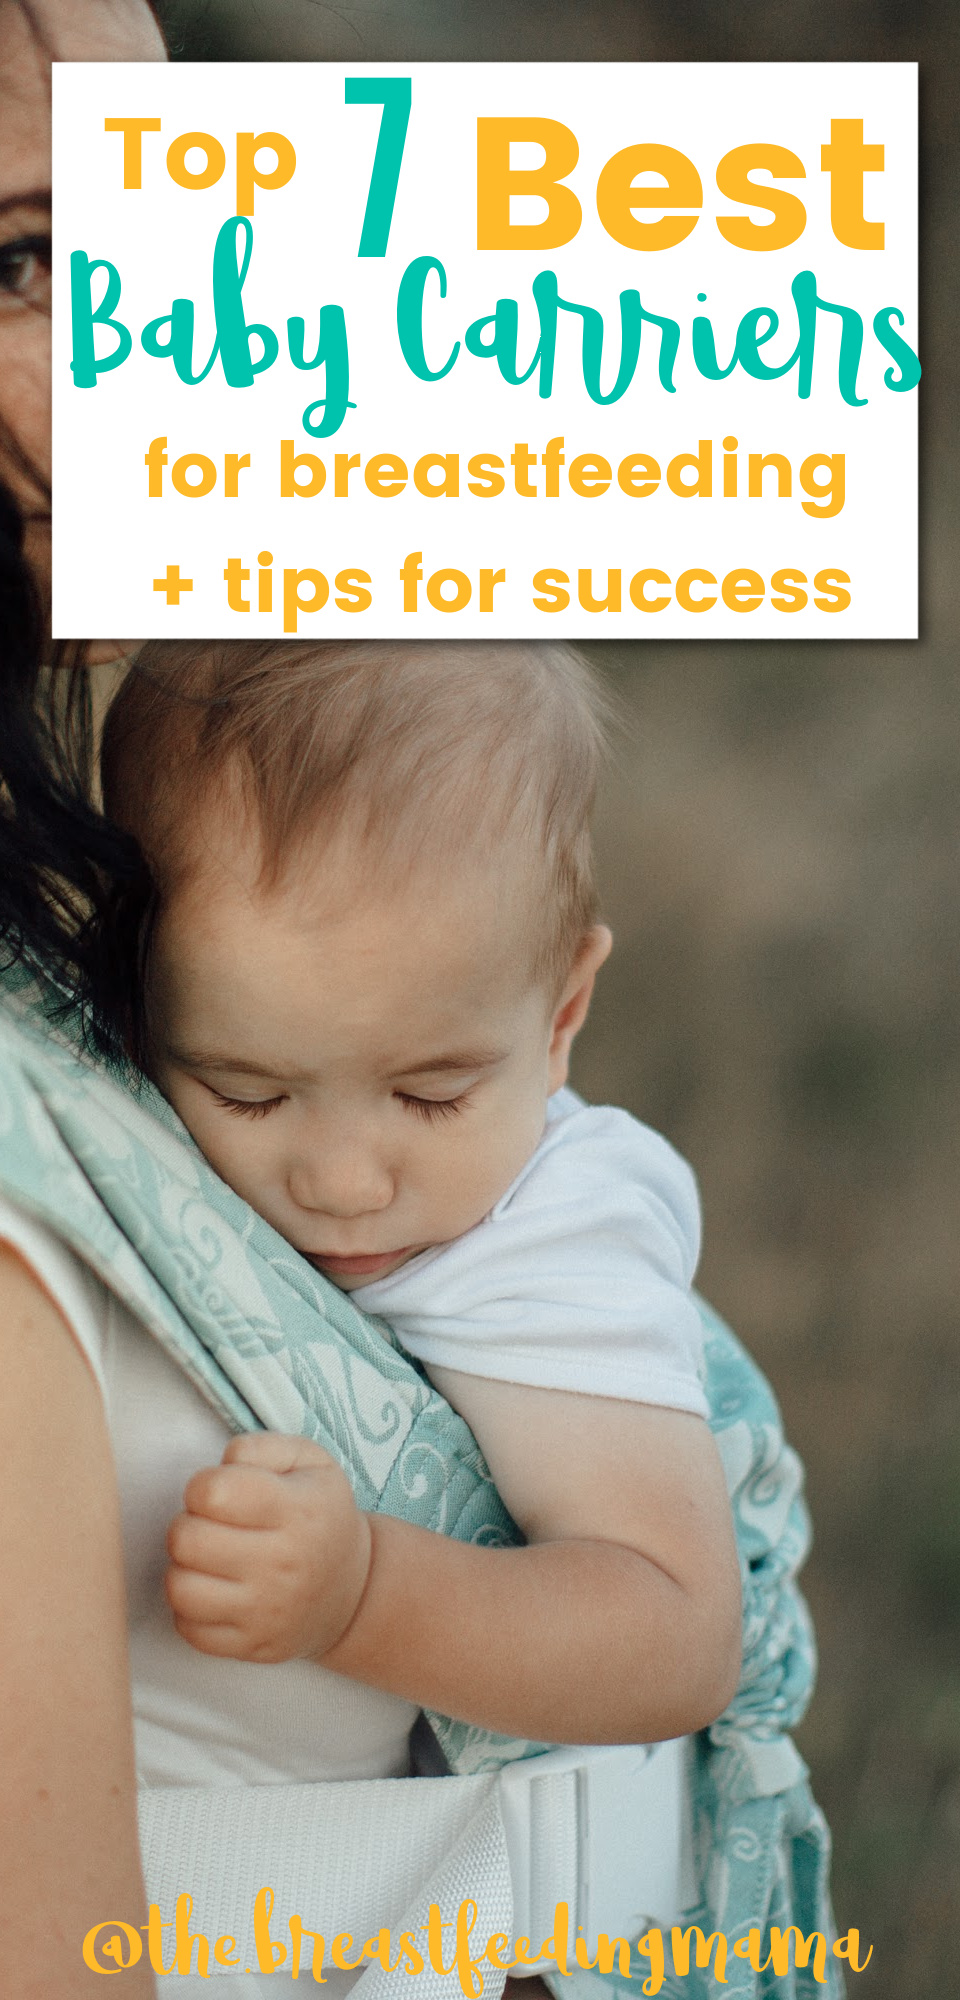 As a breastfeeding mama you know that when you have a hungry baby you need to feed them anytime and anywhere. And that might mean while you are out and about. There are many types of baby carriers- but not all are good for nursing moms. In this post, we'll share our favorite breastfeeding-friendly baby carriers, along with some tips for babywearing!